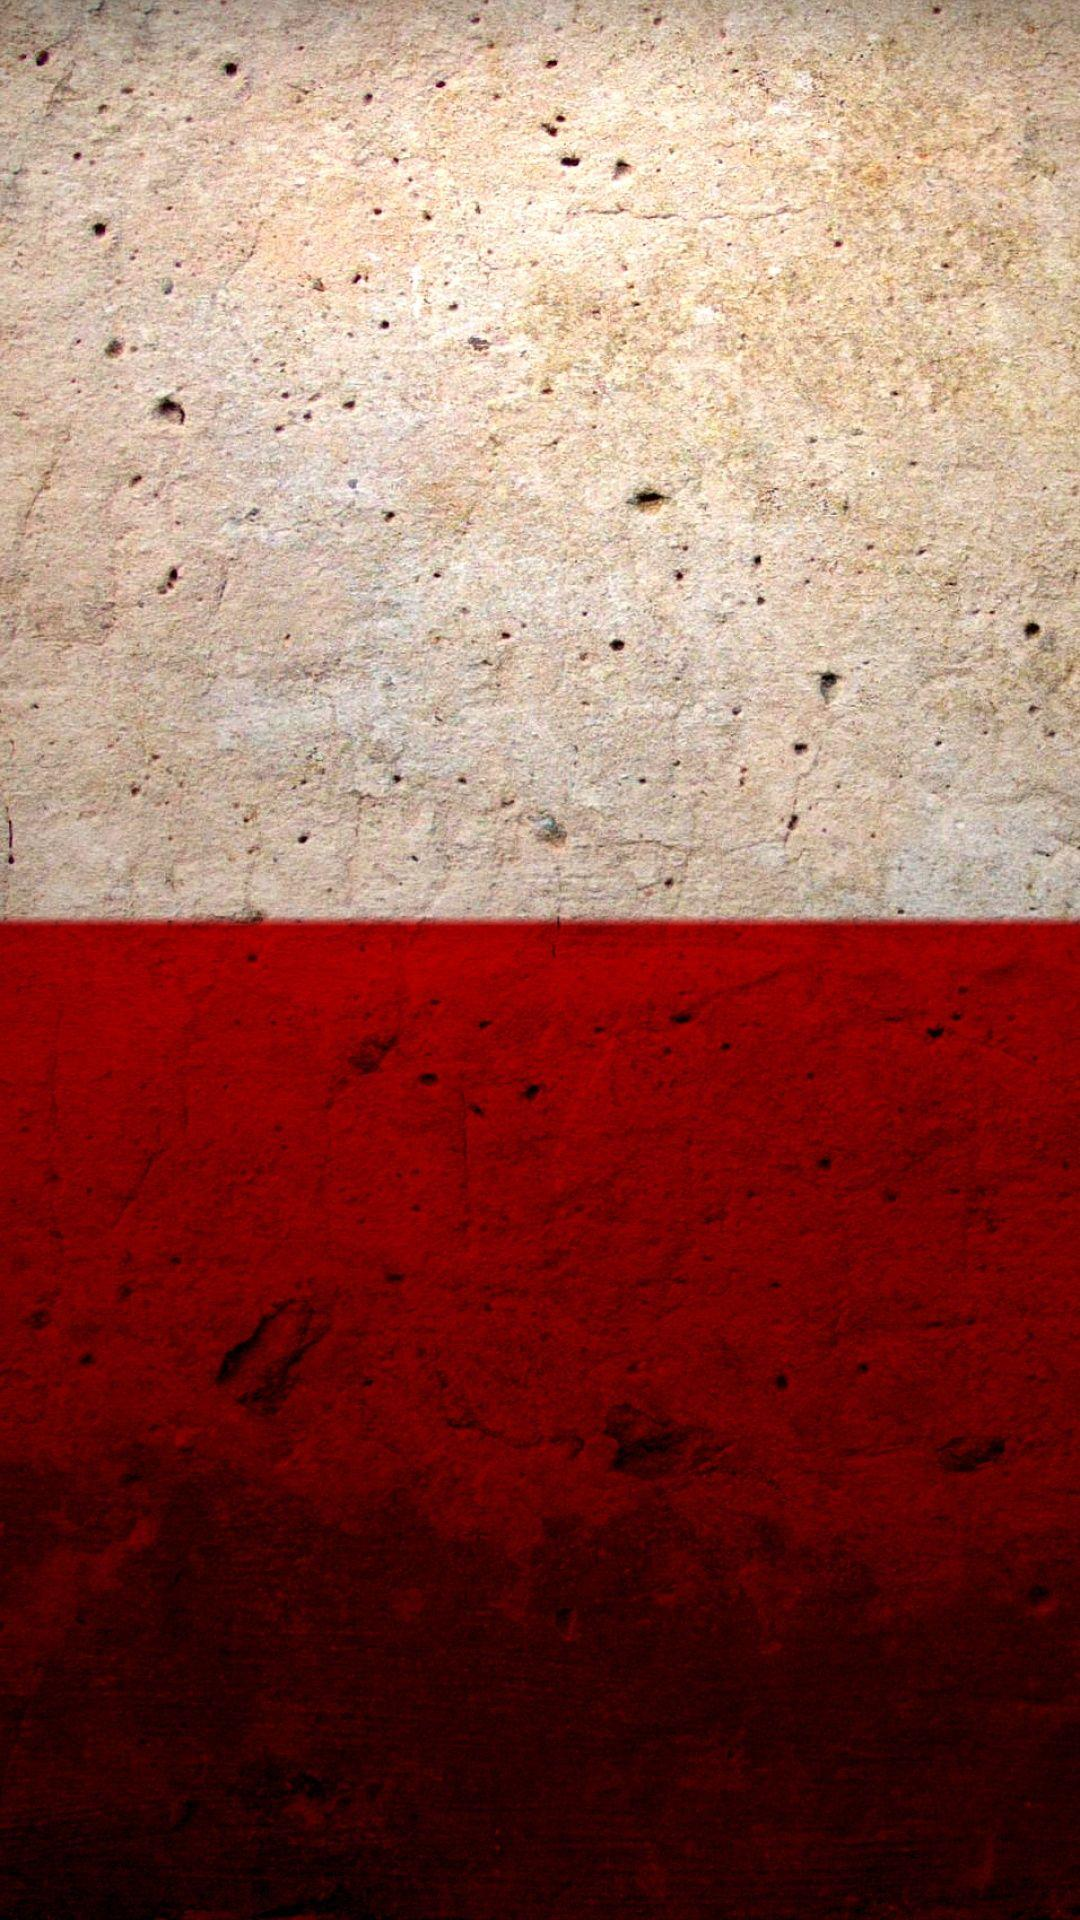 Flag Of Poland Mobile Phone Wallpaper | ID: 15100